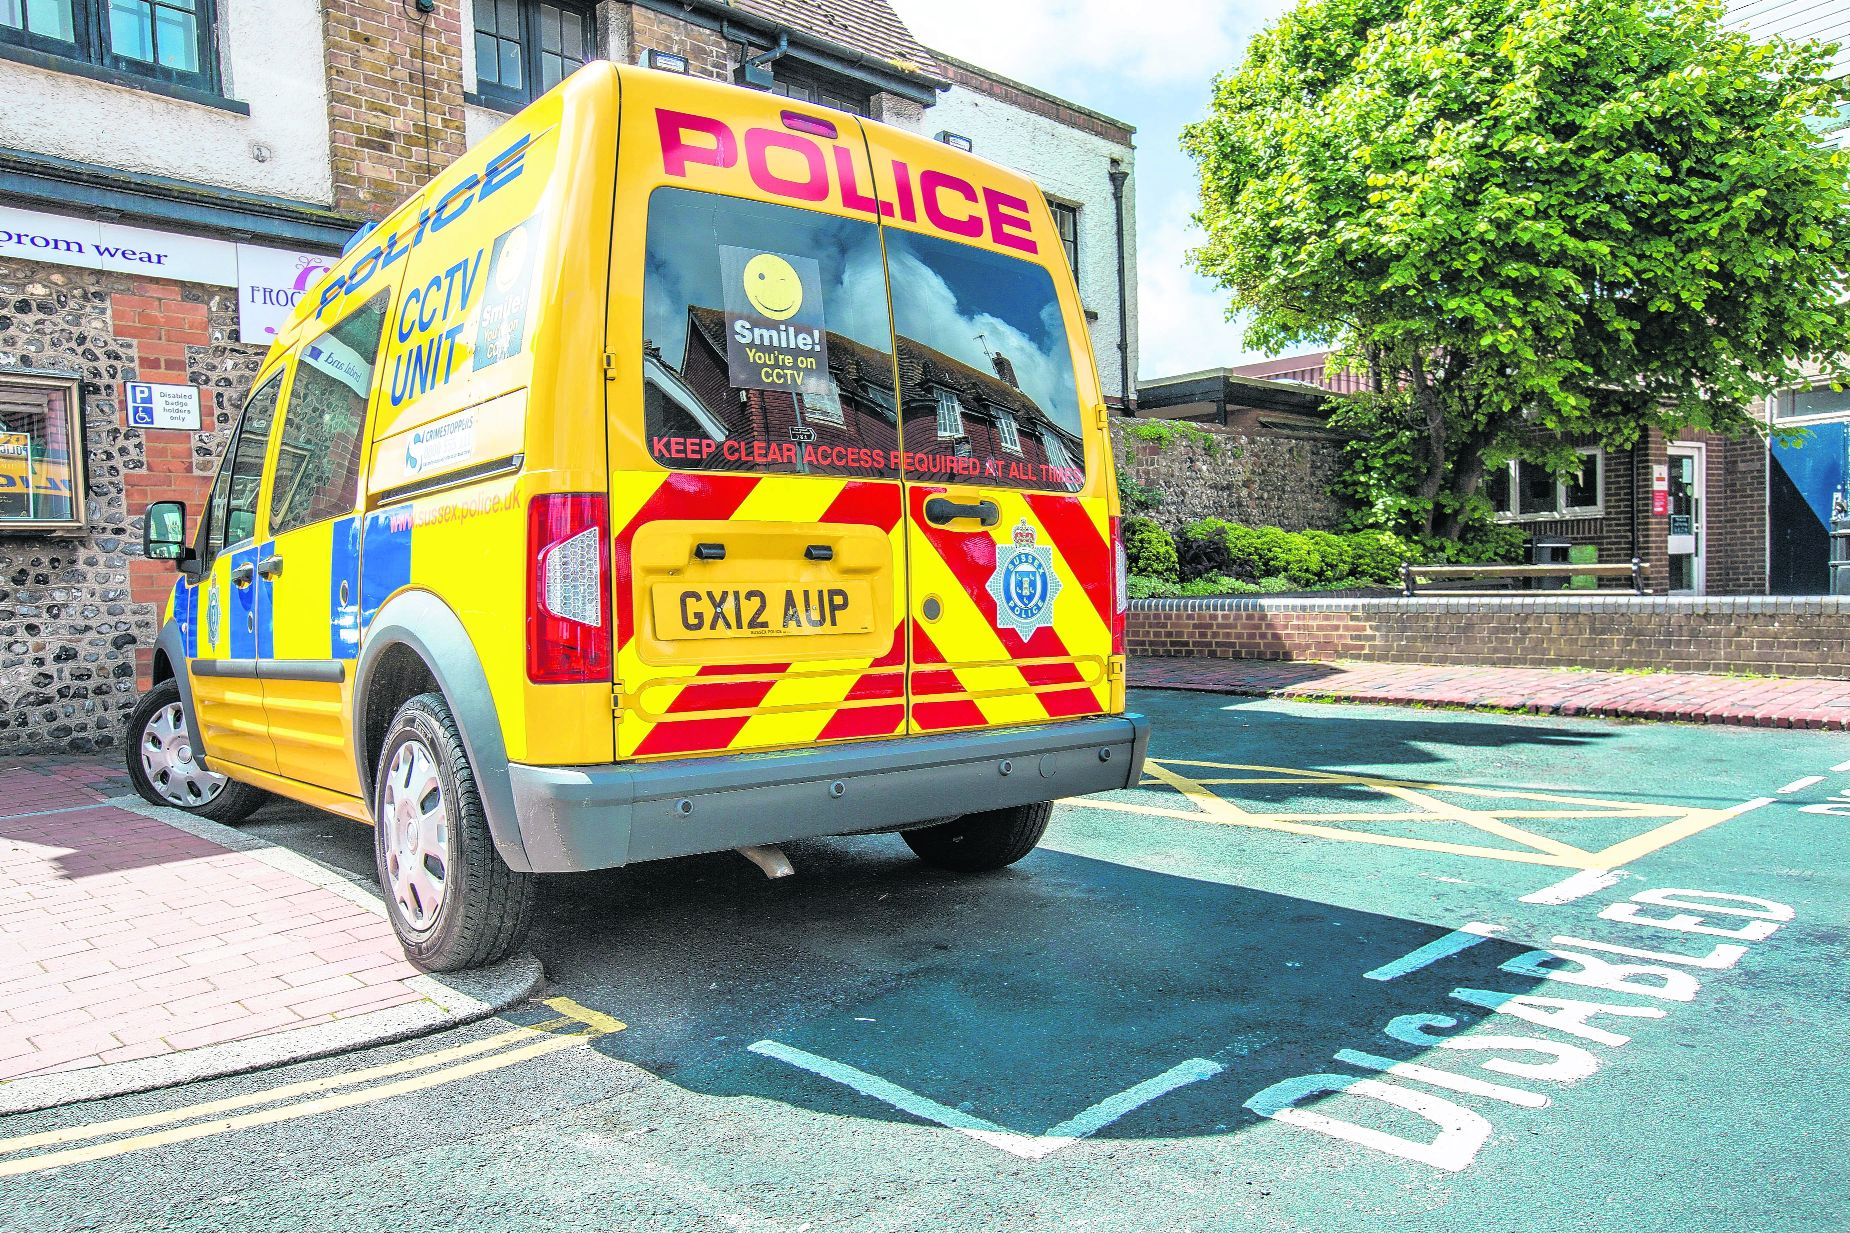 Police van parked in disabled bay for 2 days caught on camera